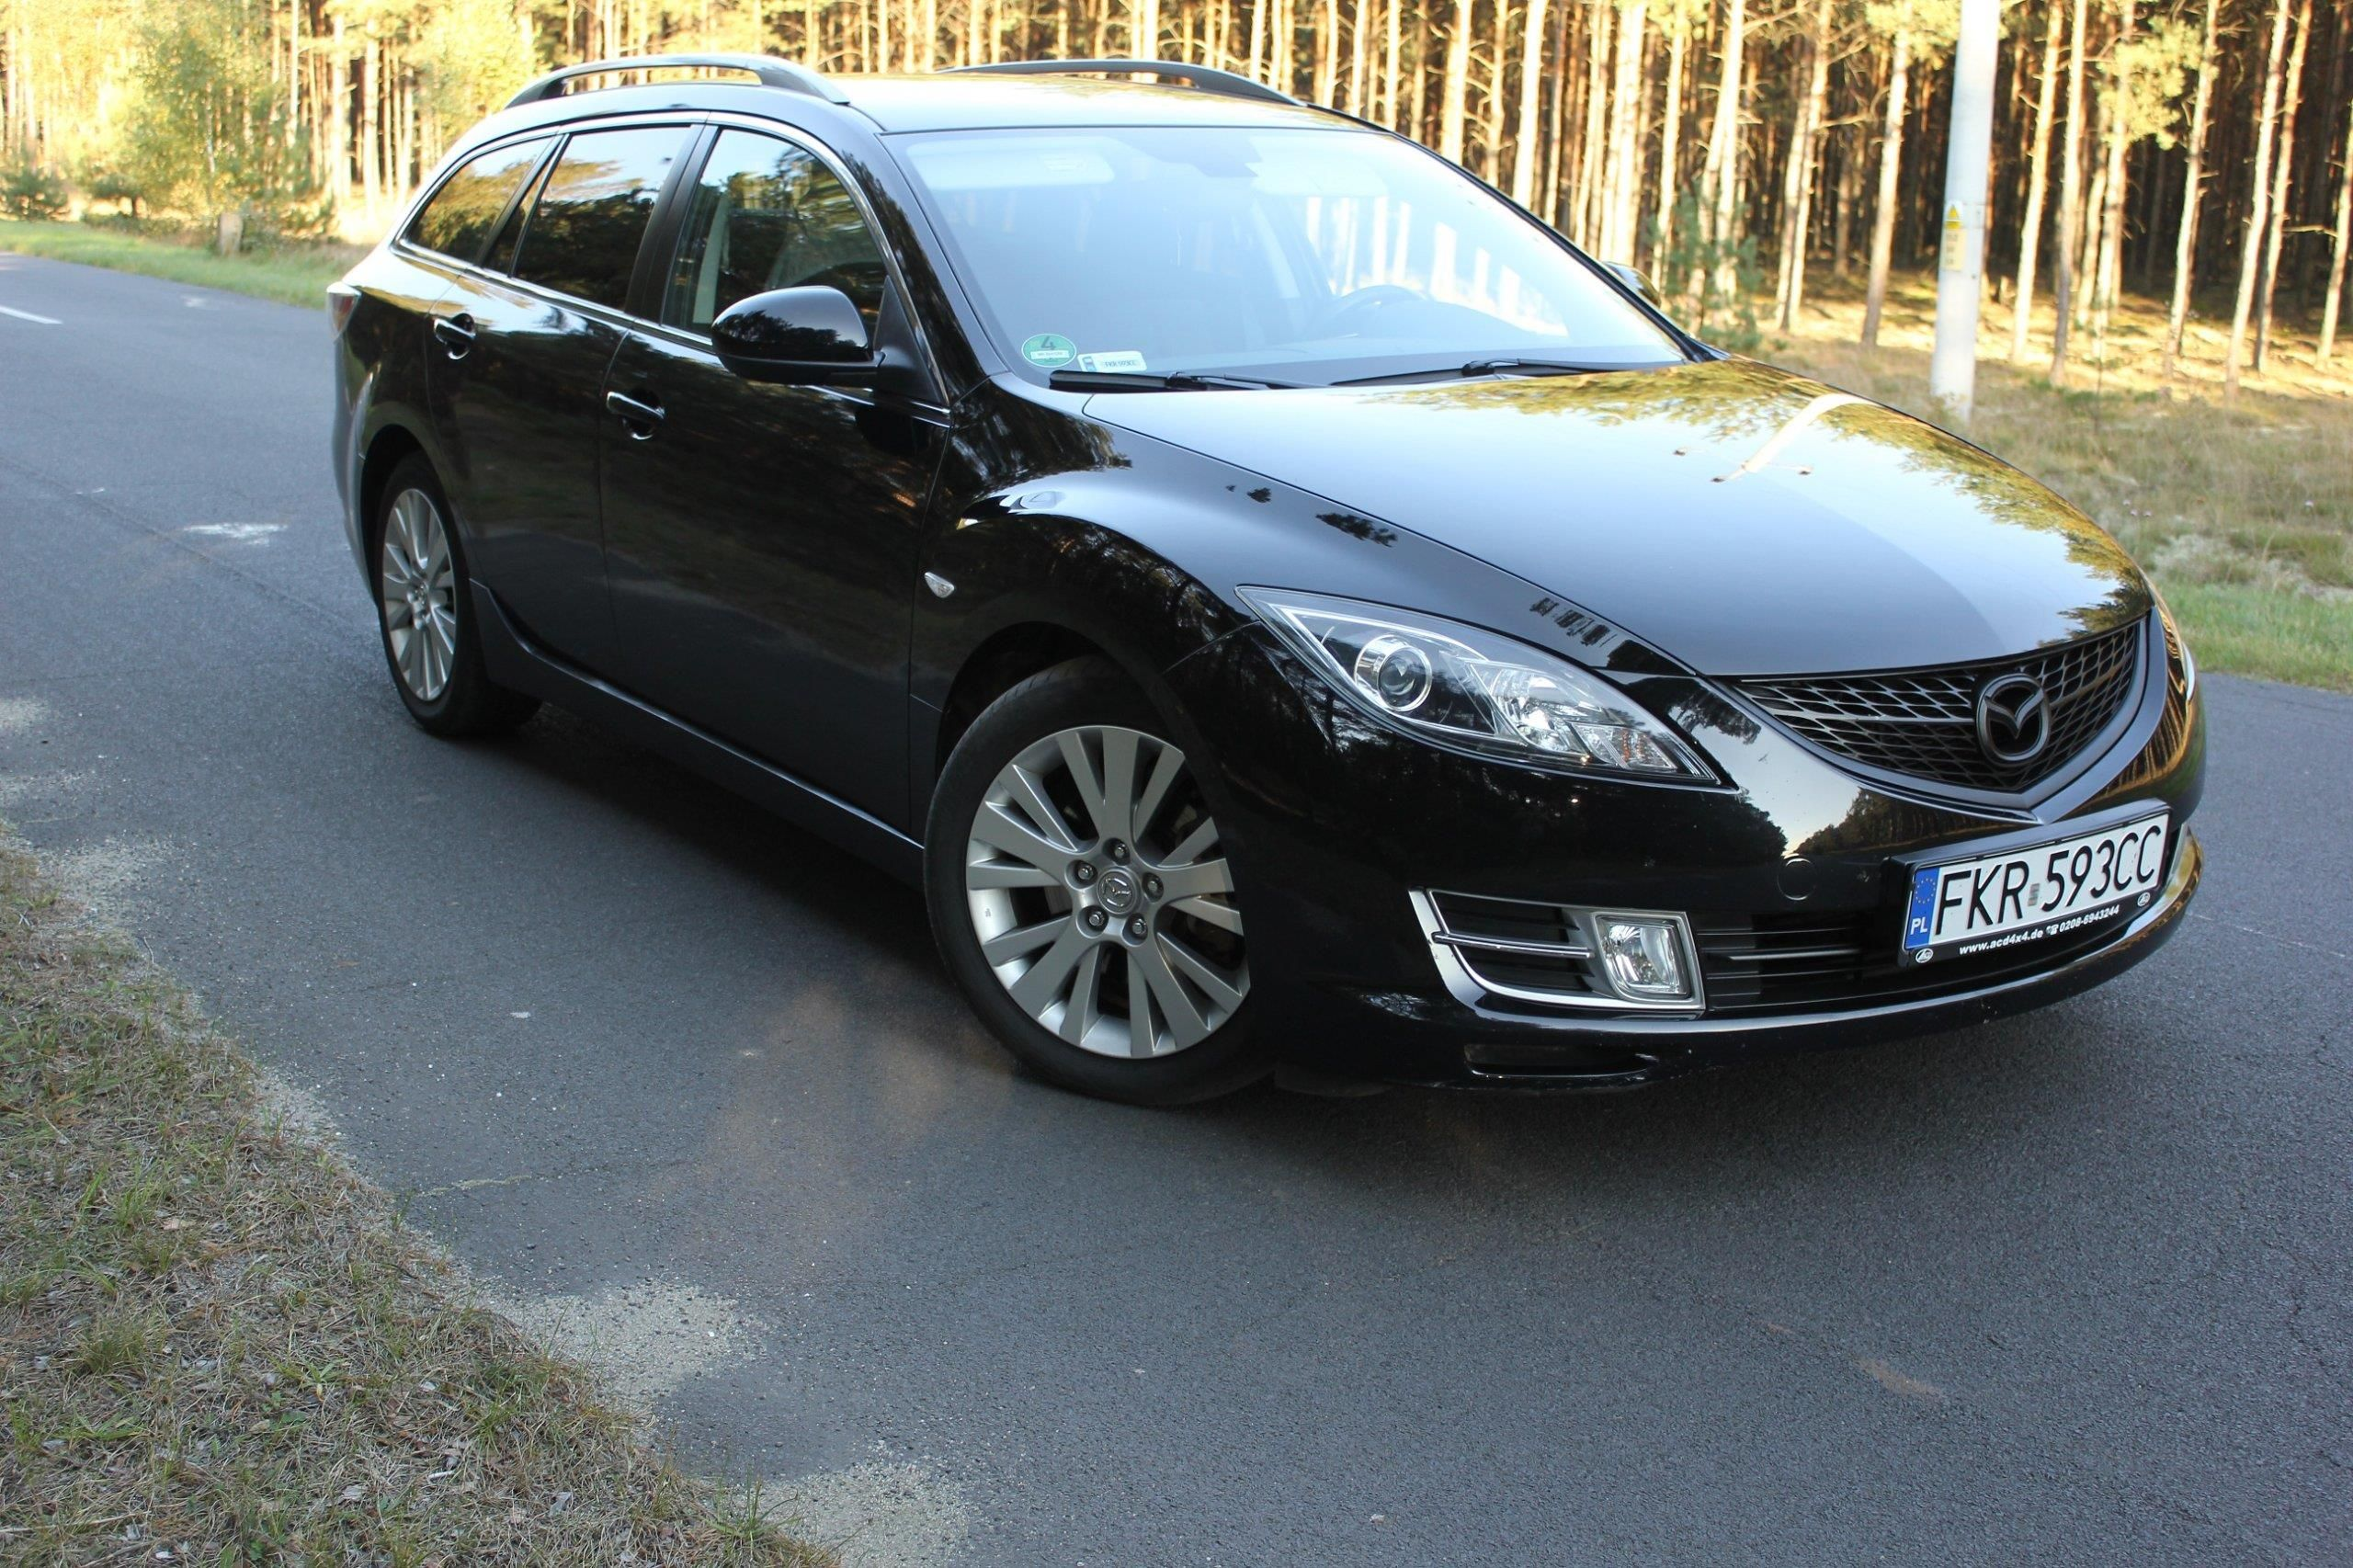 mazda 6 ii 2009 diesel 140km kombi czarny opinie i ceny. Black Bedroom Furniture Sets. Home Design Ideas